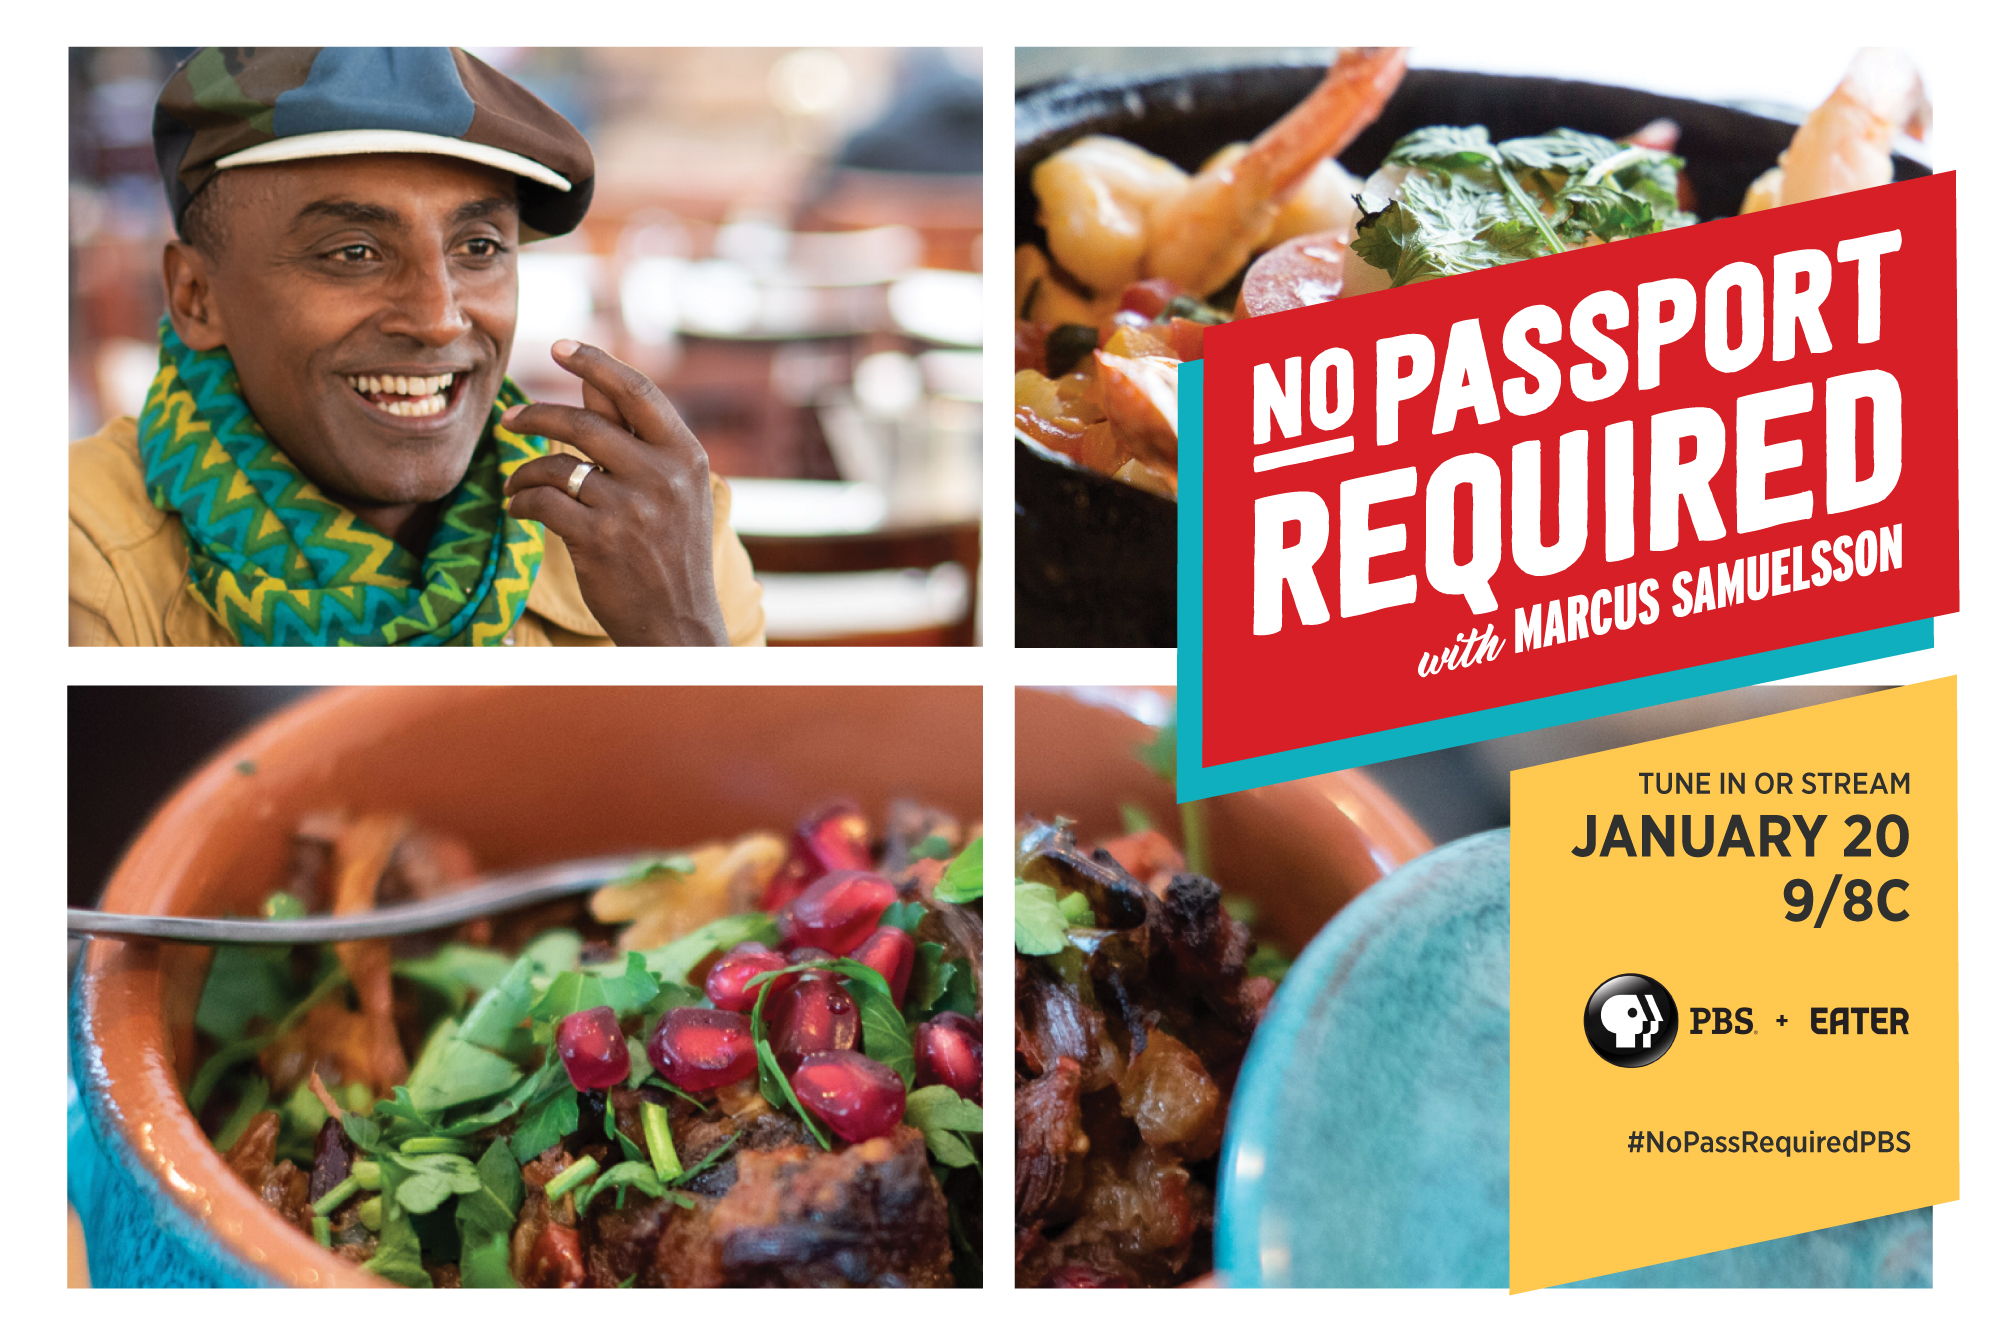 Key art from No Passport Required, showing host Marcus Samuelsson's face and some dishes from the show with the logo over them.